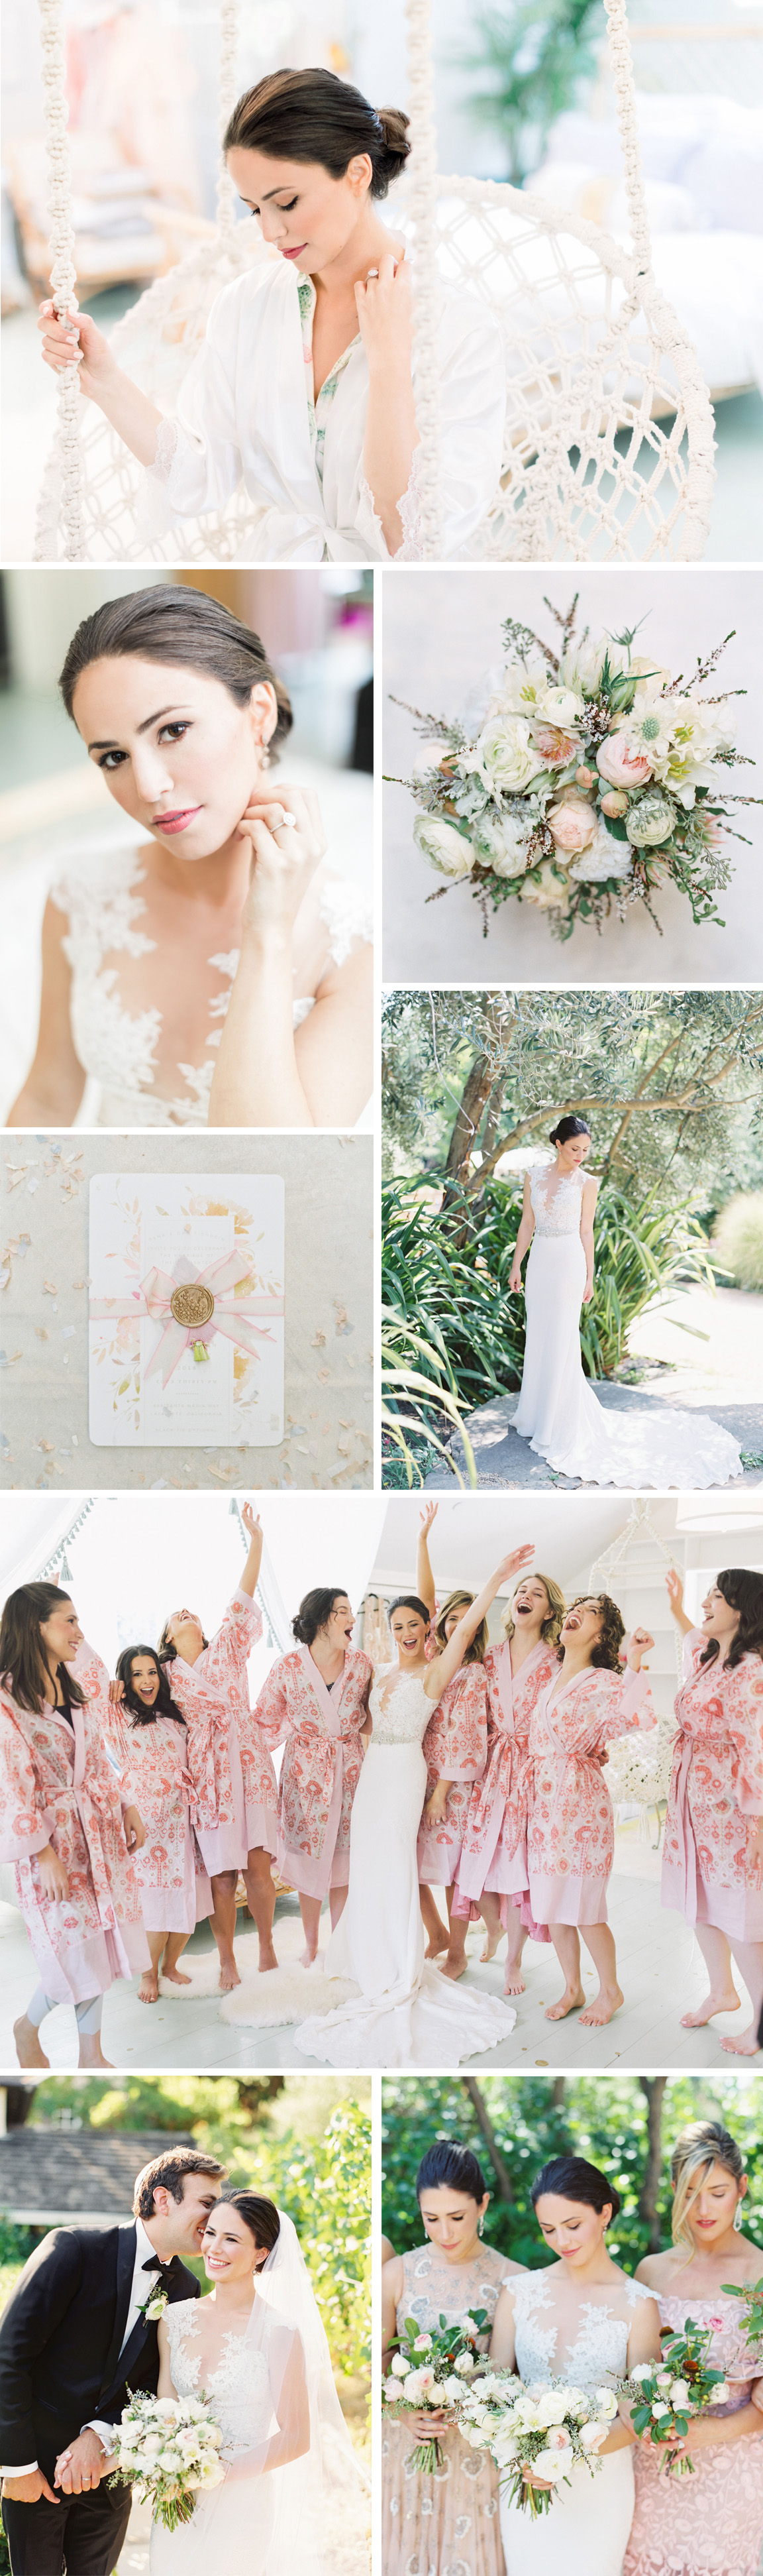 photos by Kelsea Holder Photography